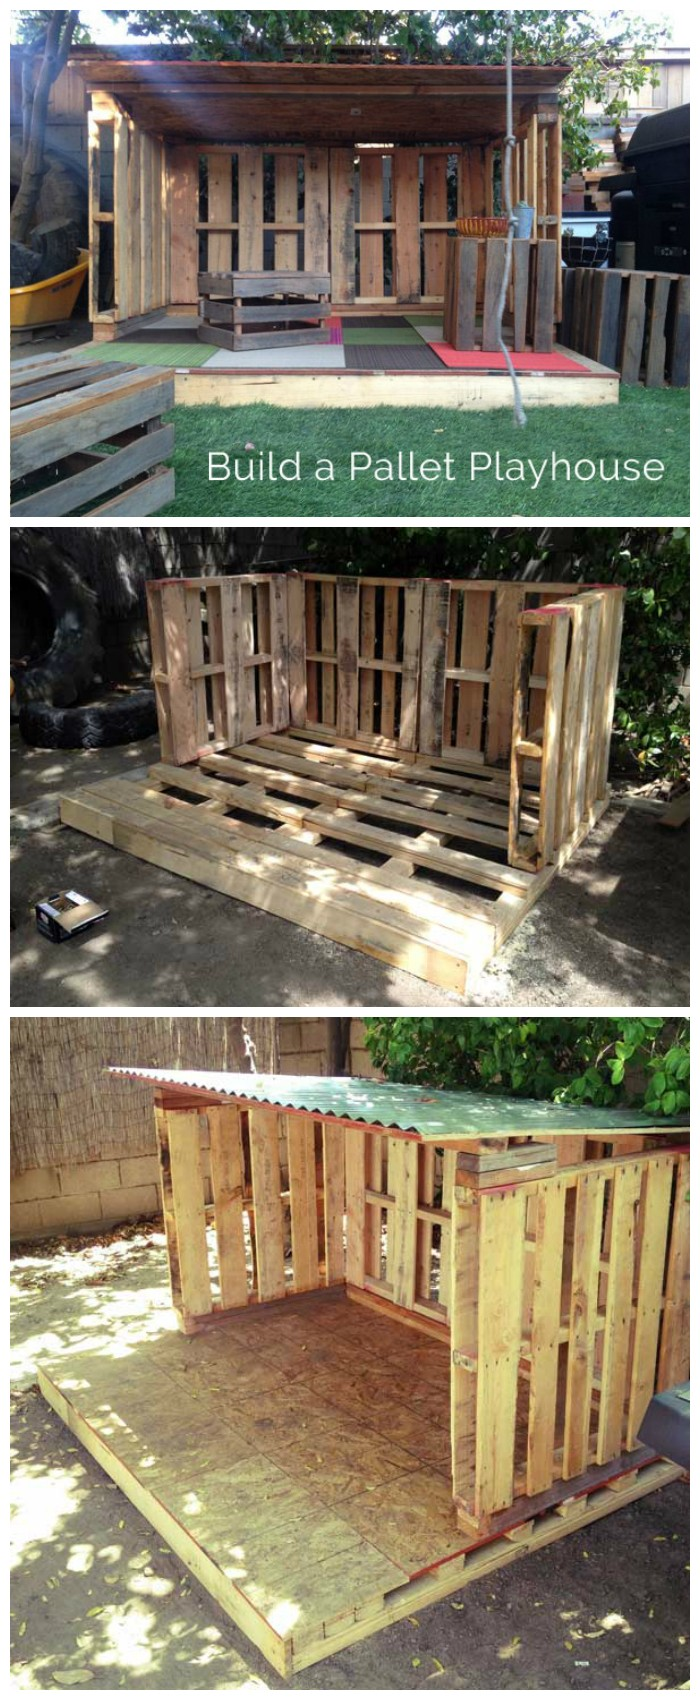 Our Pallet Playhouse